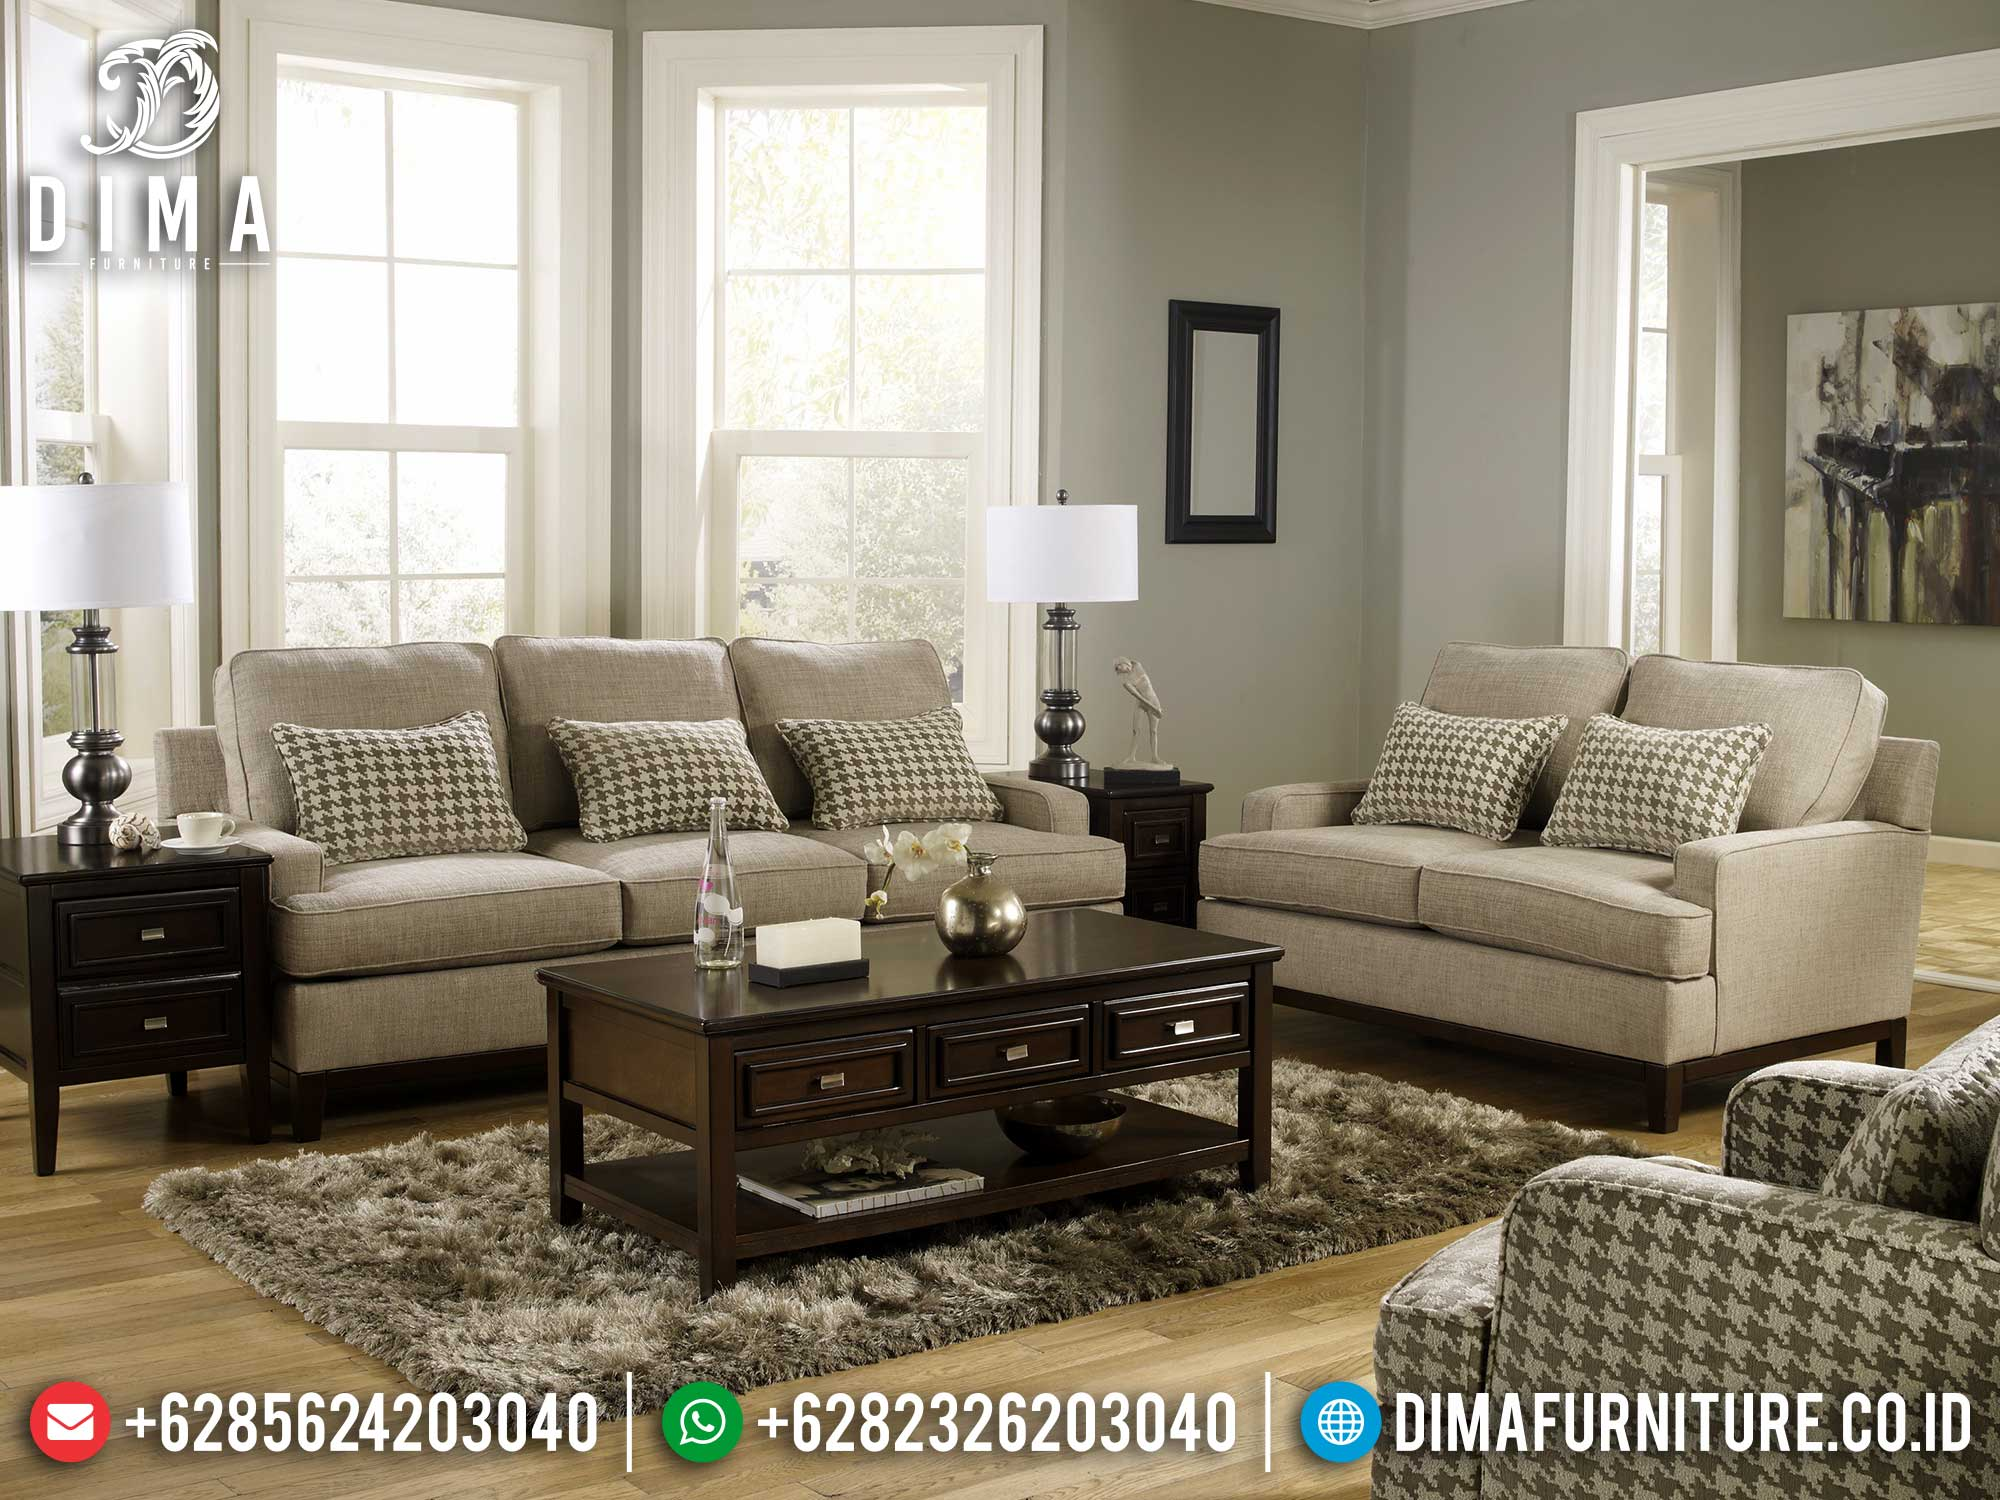 Best Seller Sofa Tamu Minimalis Jepara Classic Natural Jati Perhutani Mm-0938